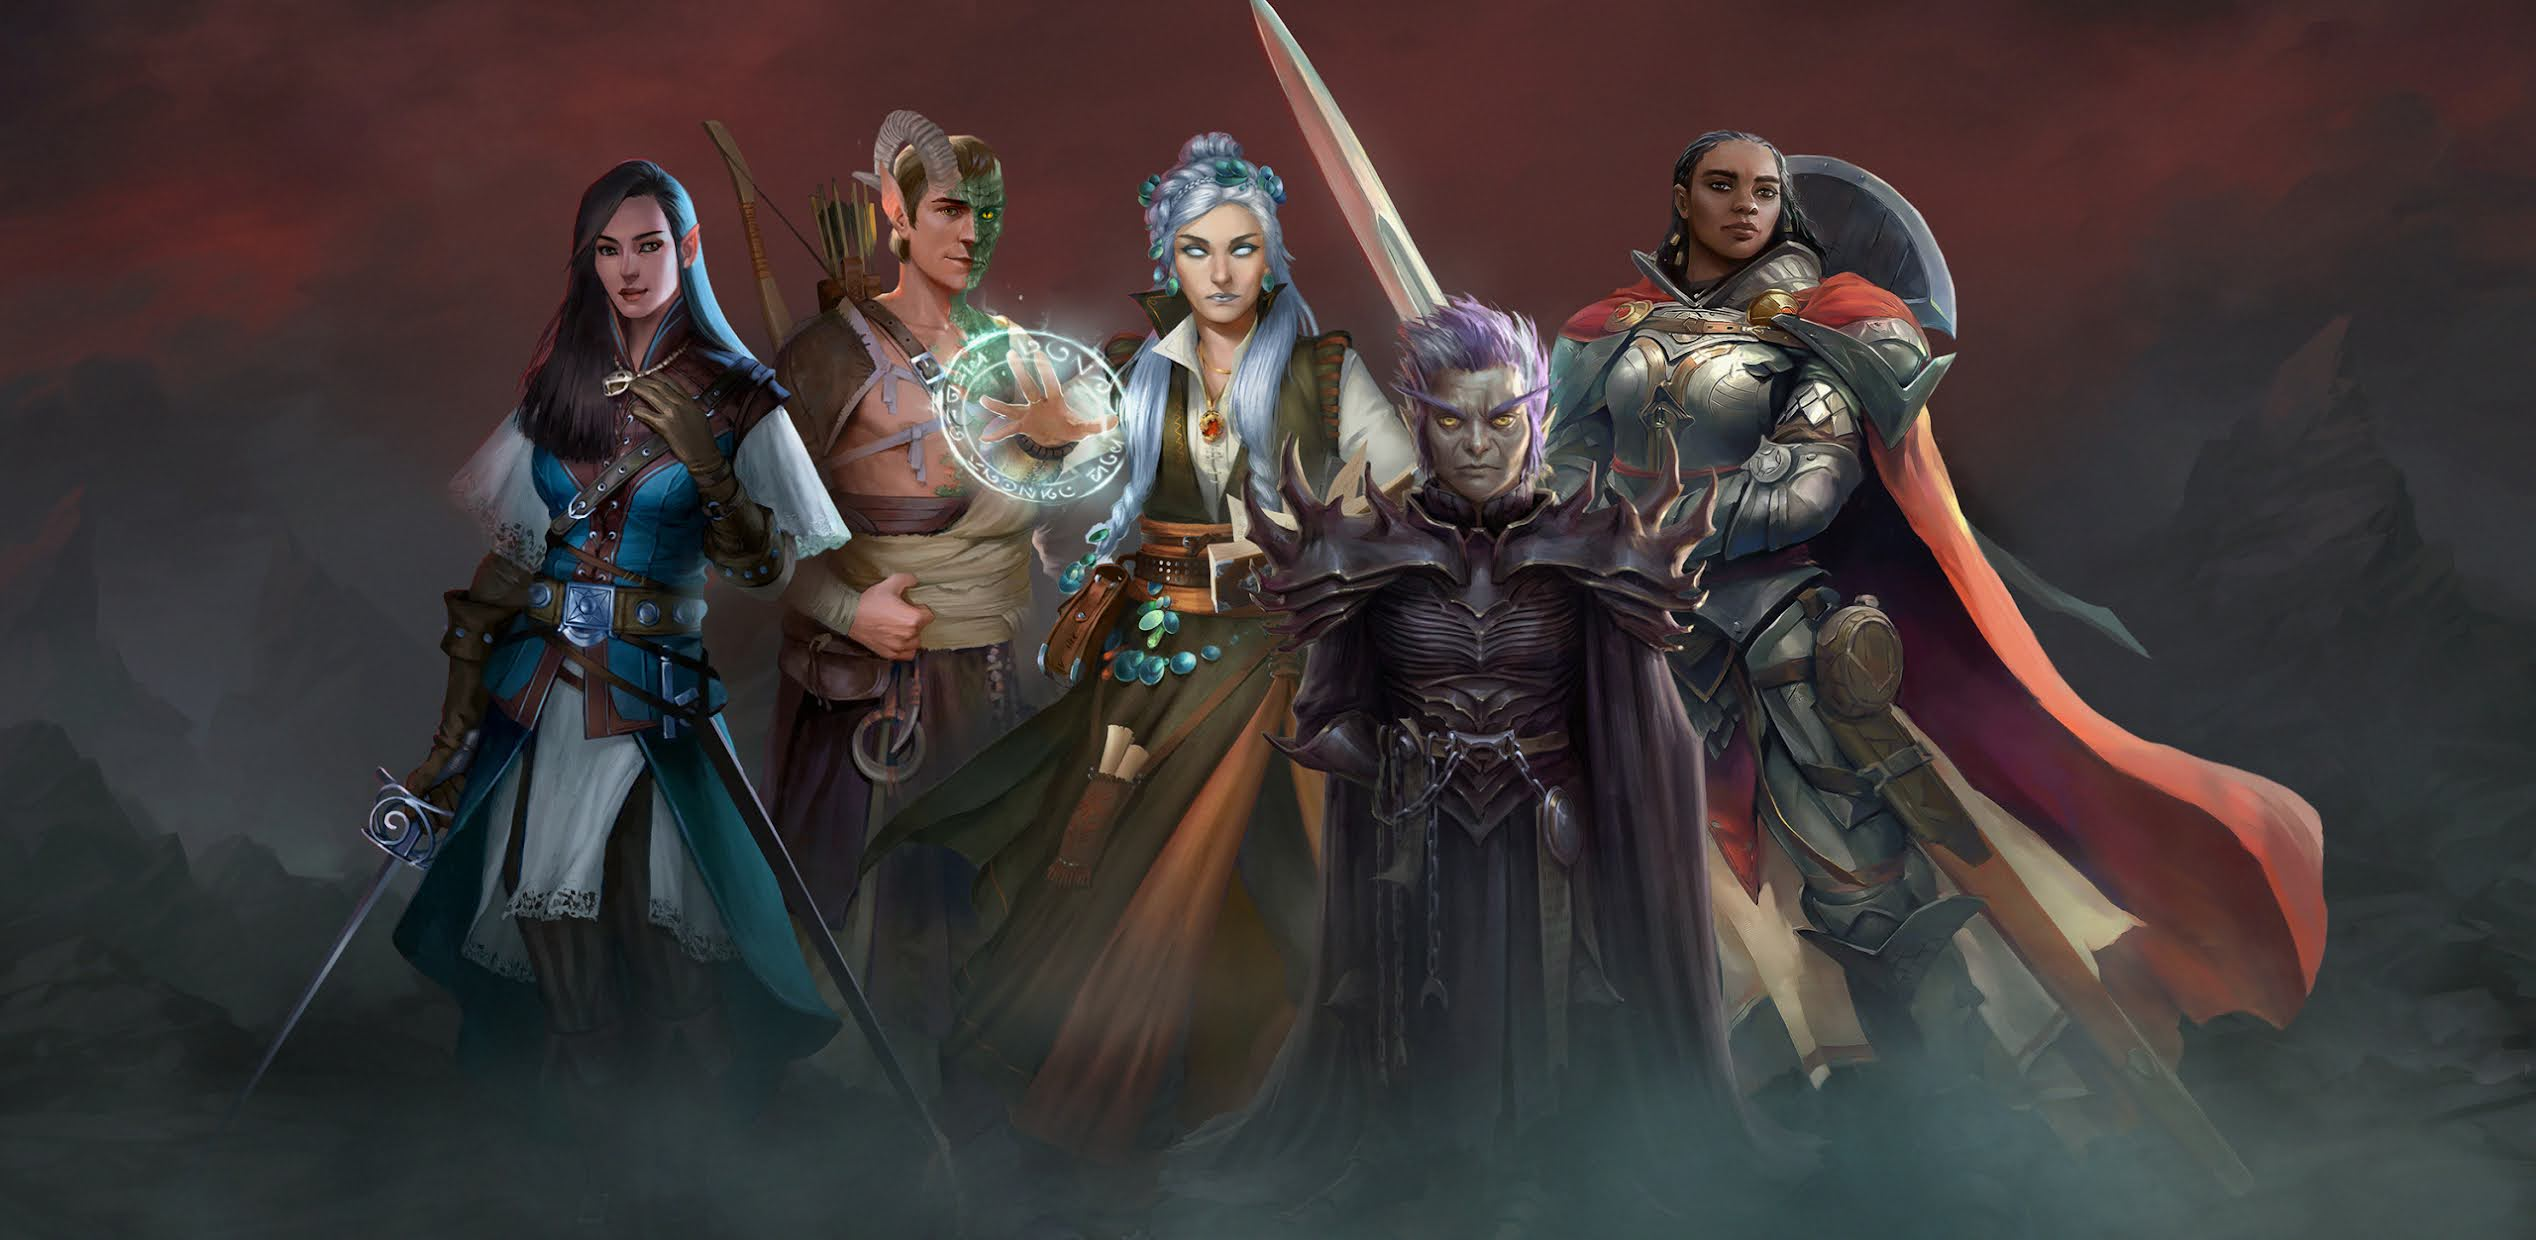 Guide to all the mythical quests in Pathfinder: Wrath of the Righteous